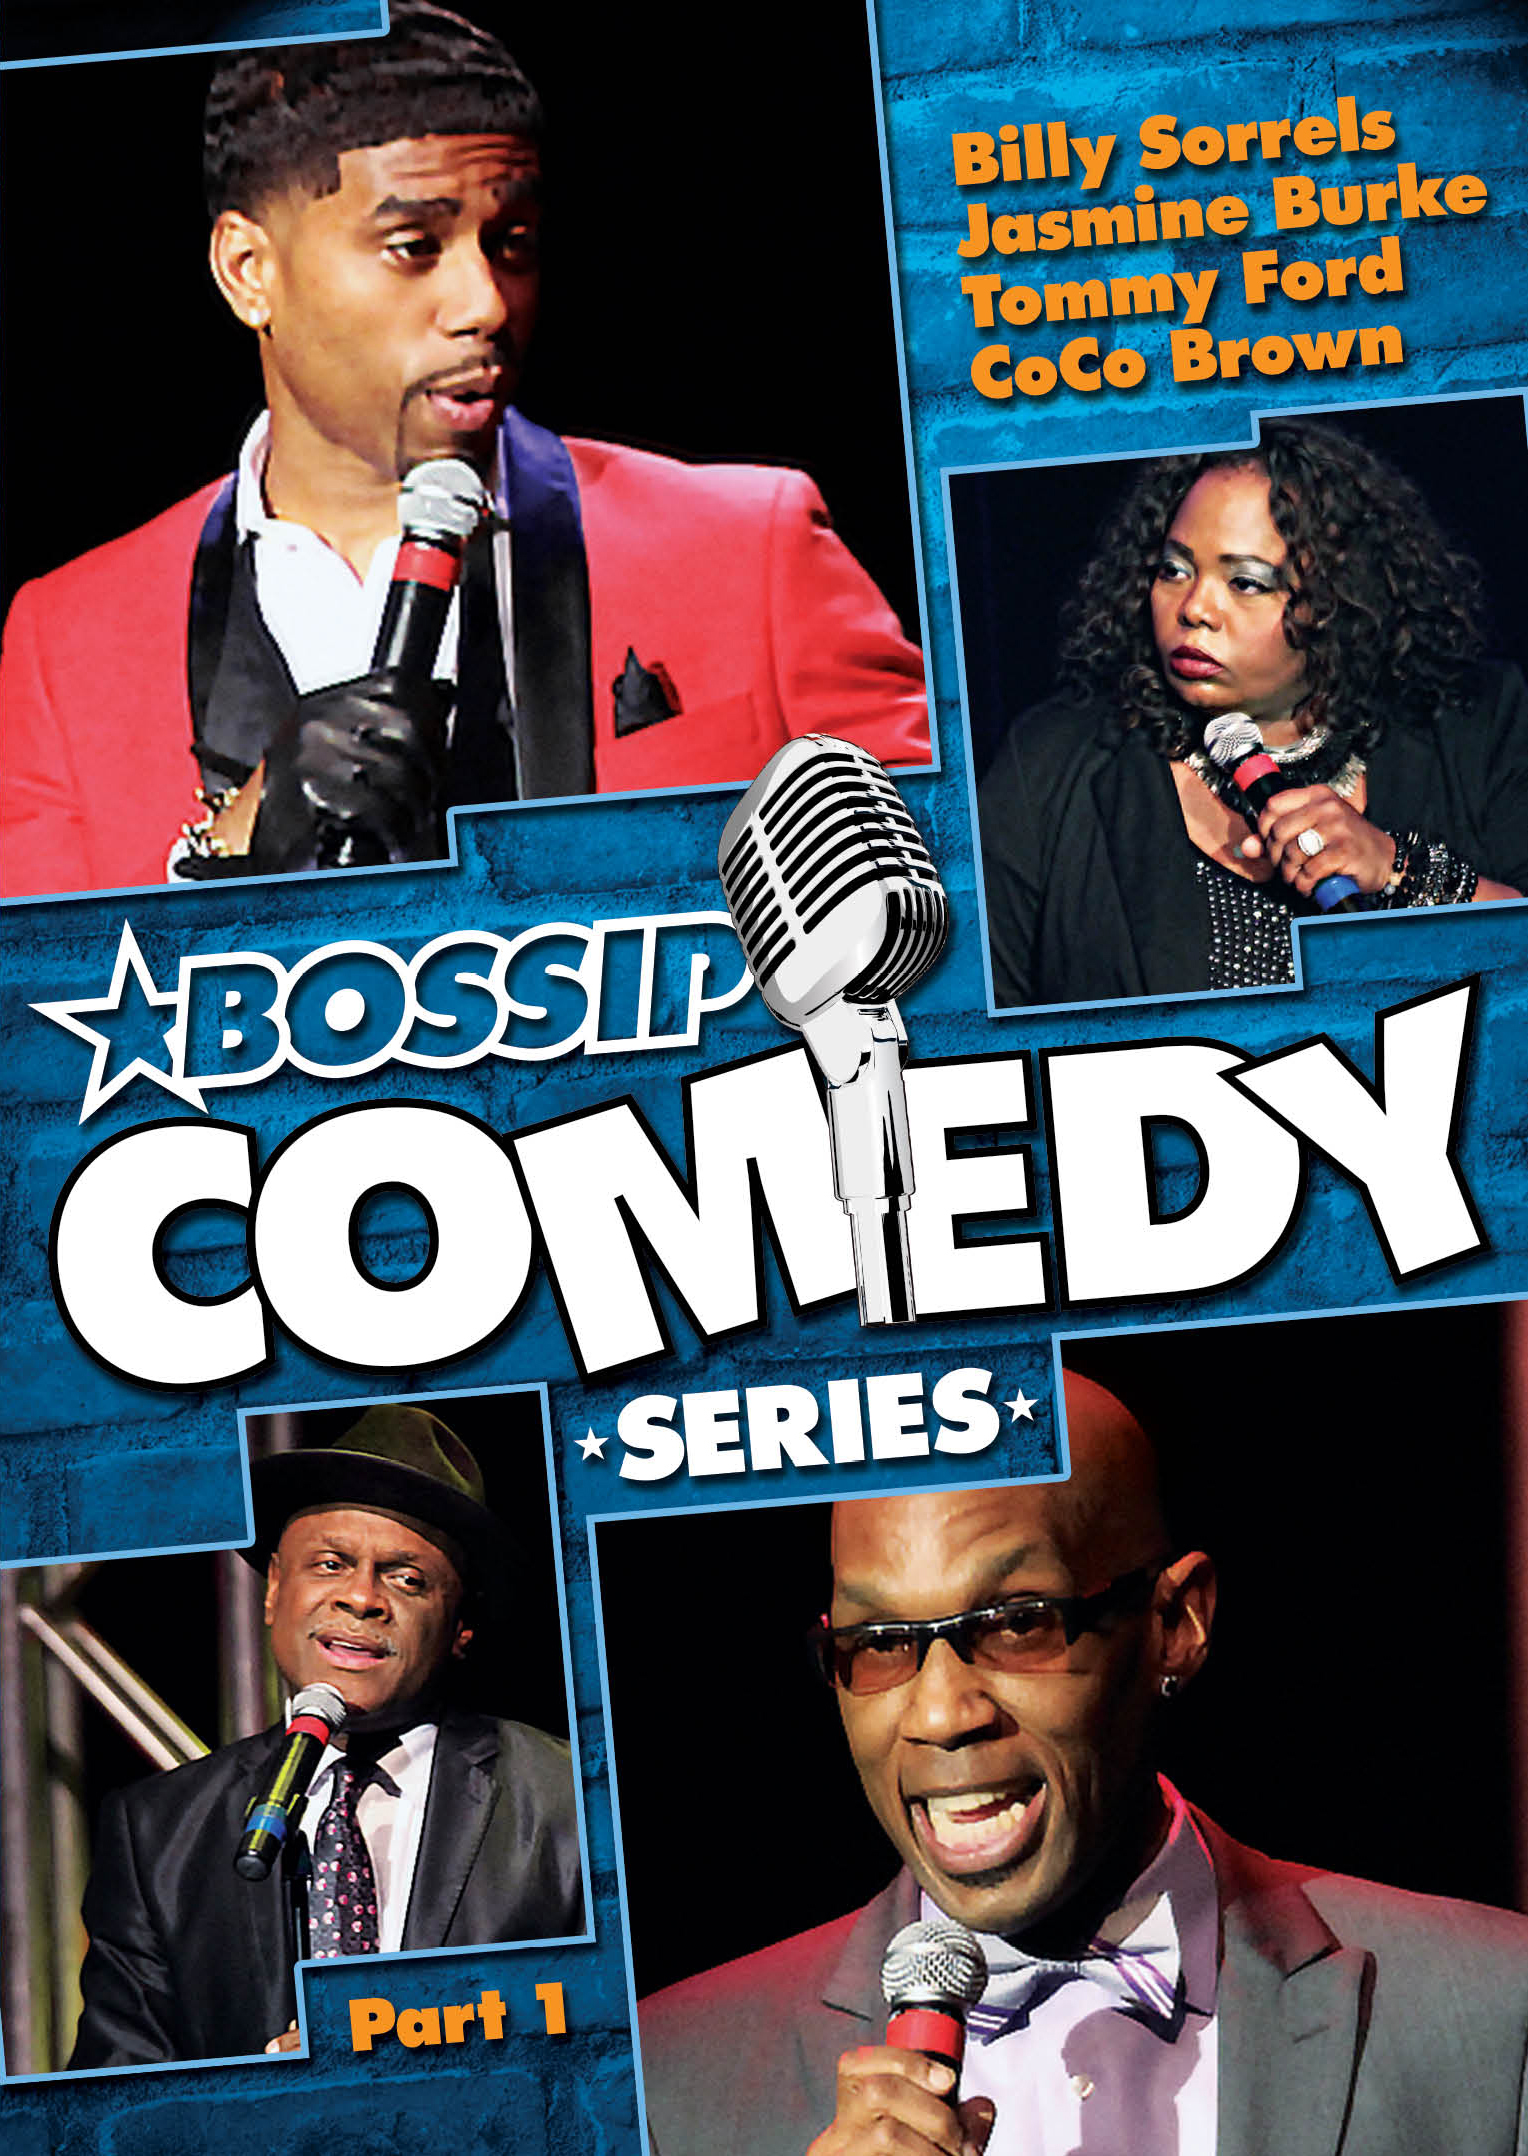 Bossip Comedy Series, Part 1